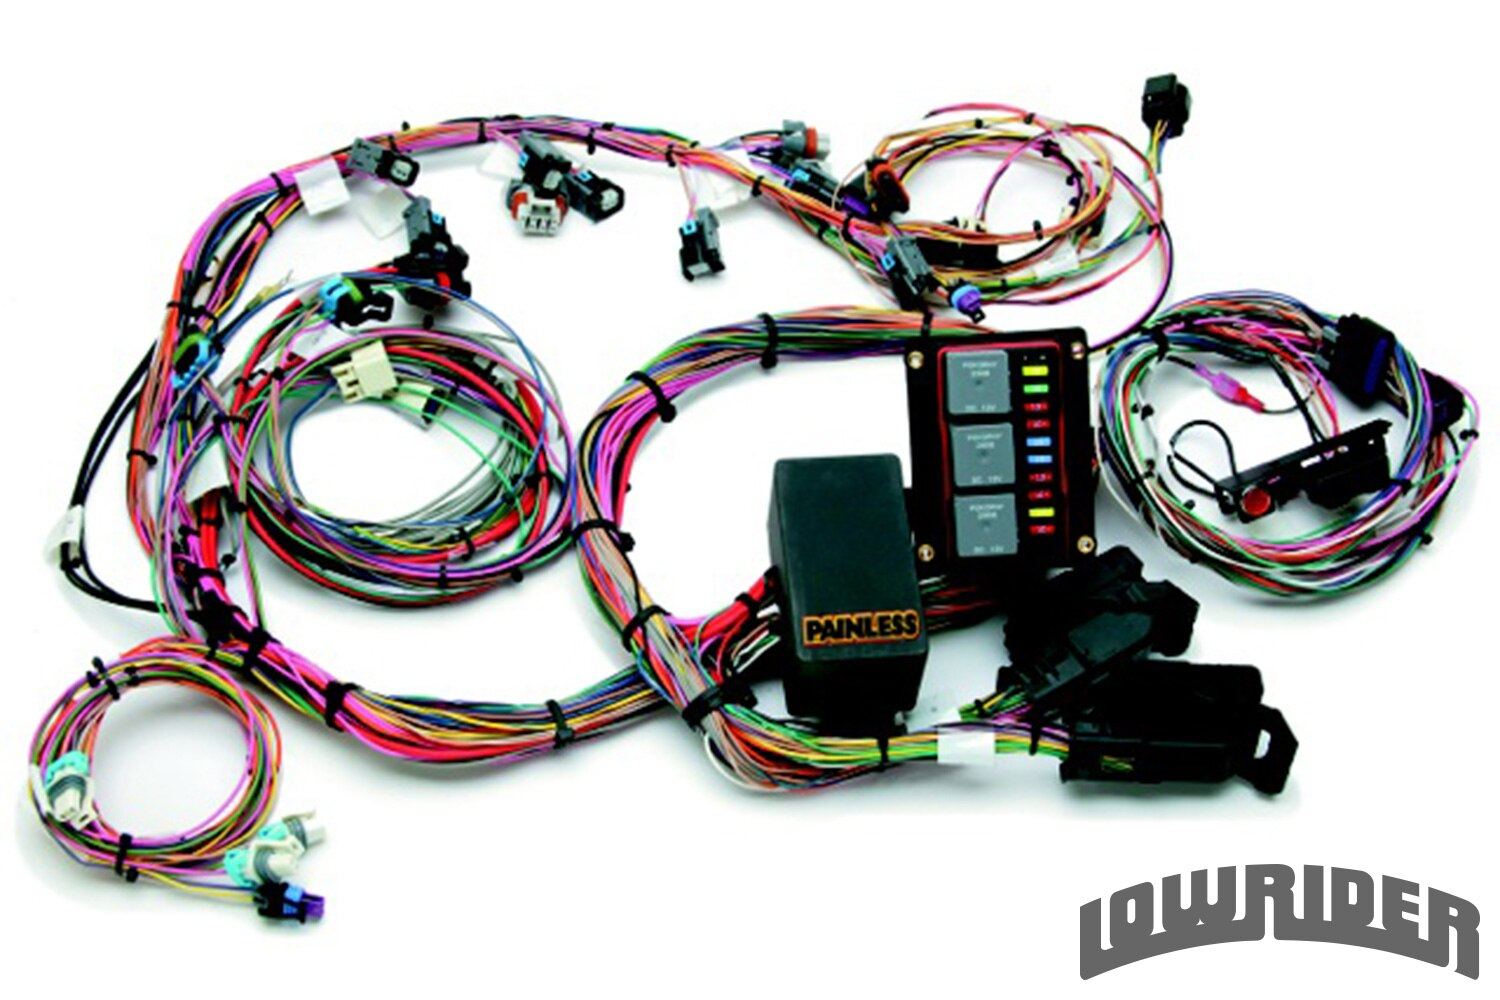 lowrider new products march 2014 painless performance LS harness lowrider new products march 2014 lowrider magazine painless ls wiring harness at gsmx.co